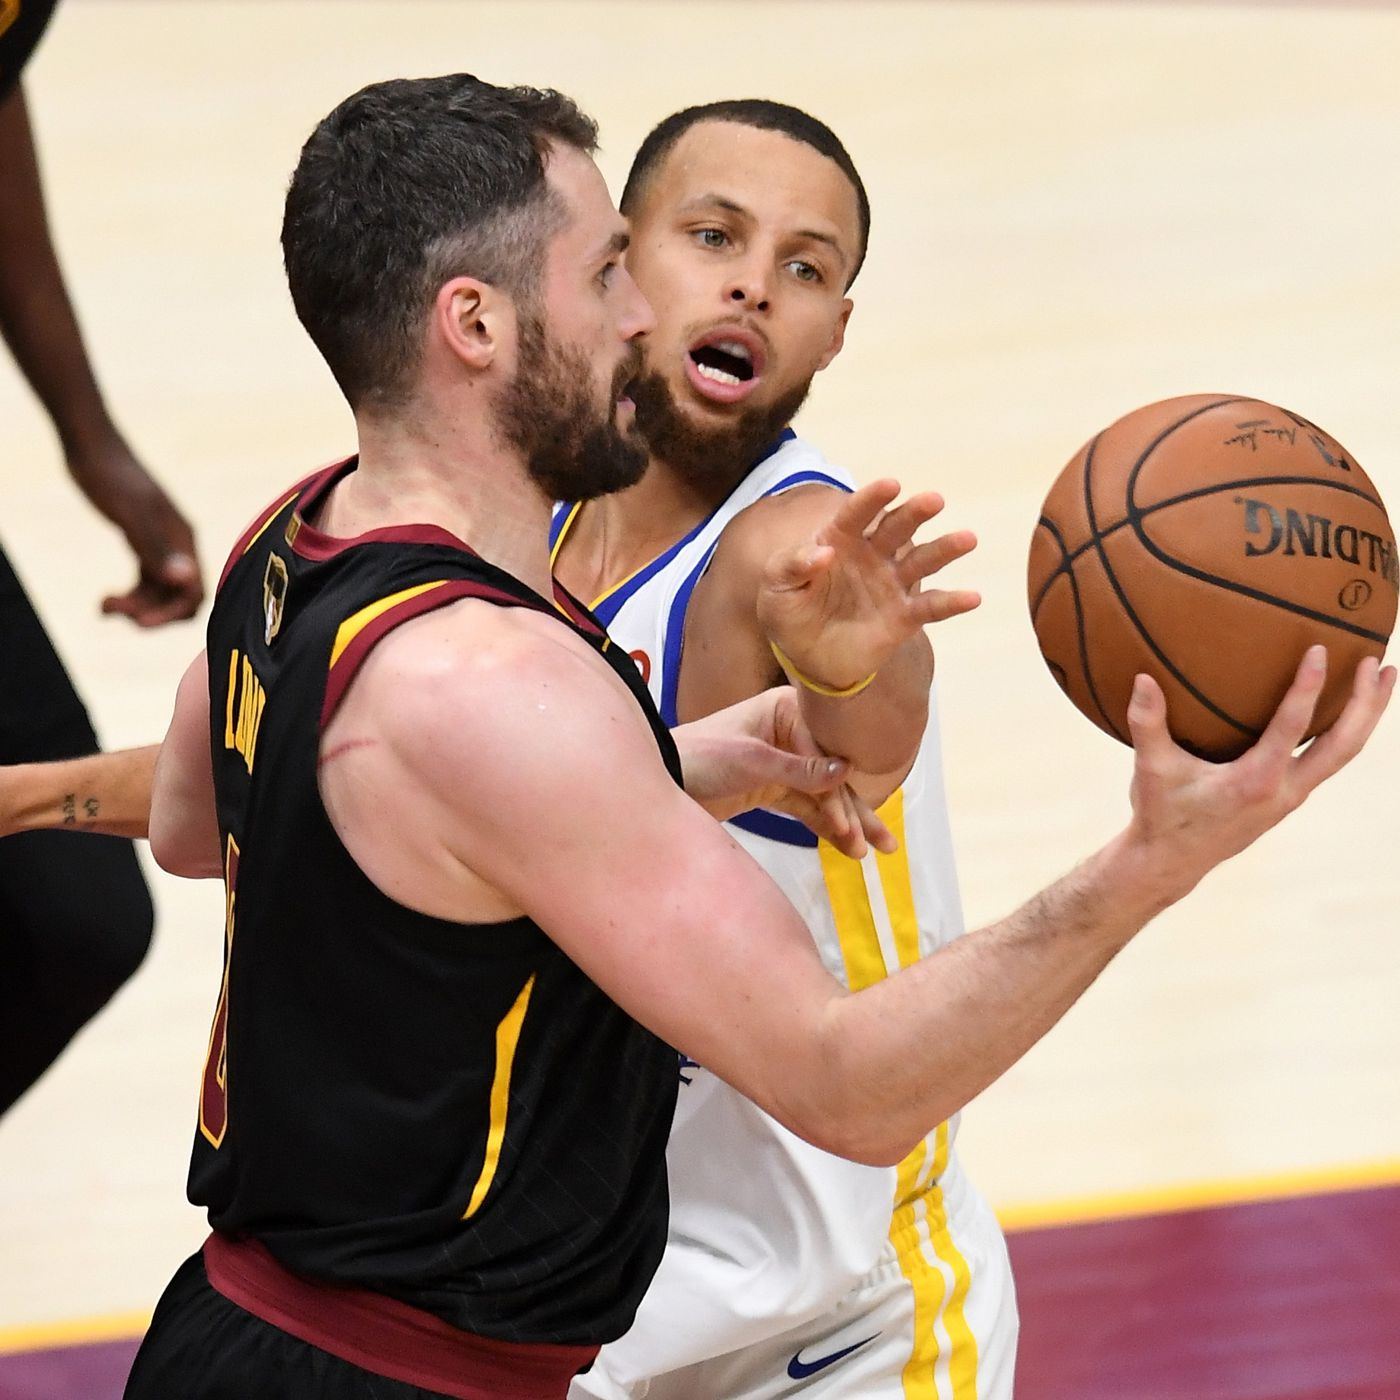 Kevin Love S Nba Finals Haircut Is Being Mercilessly Mocked Racked